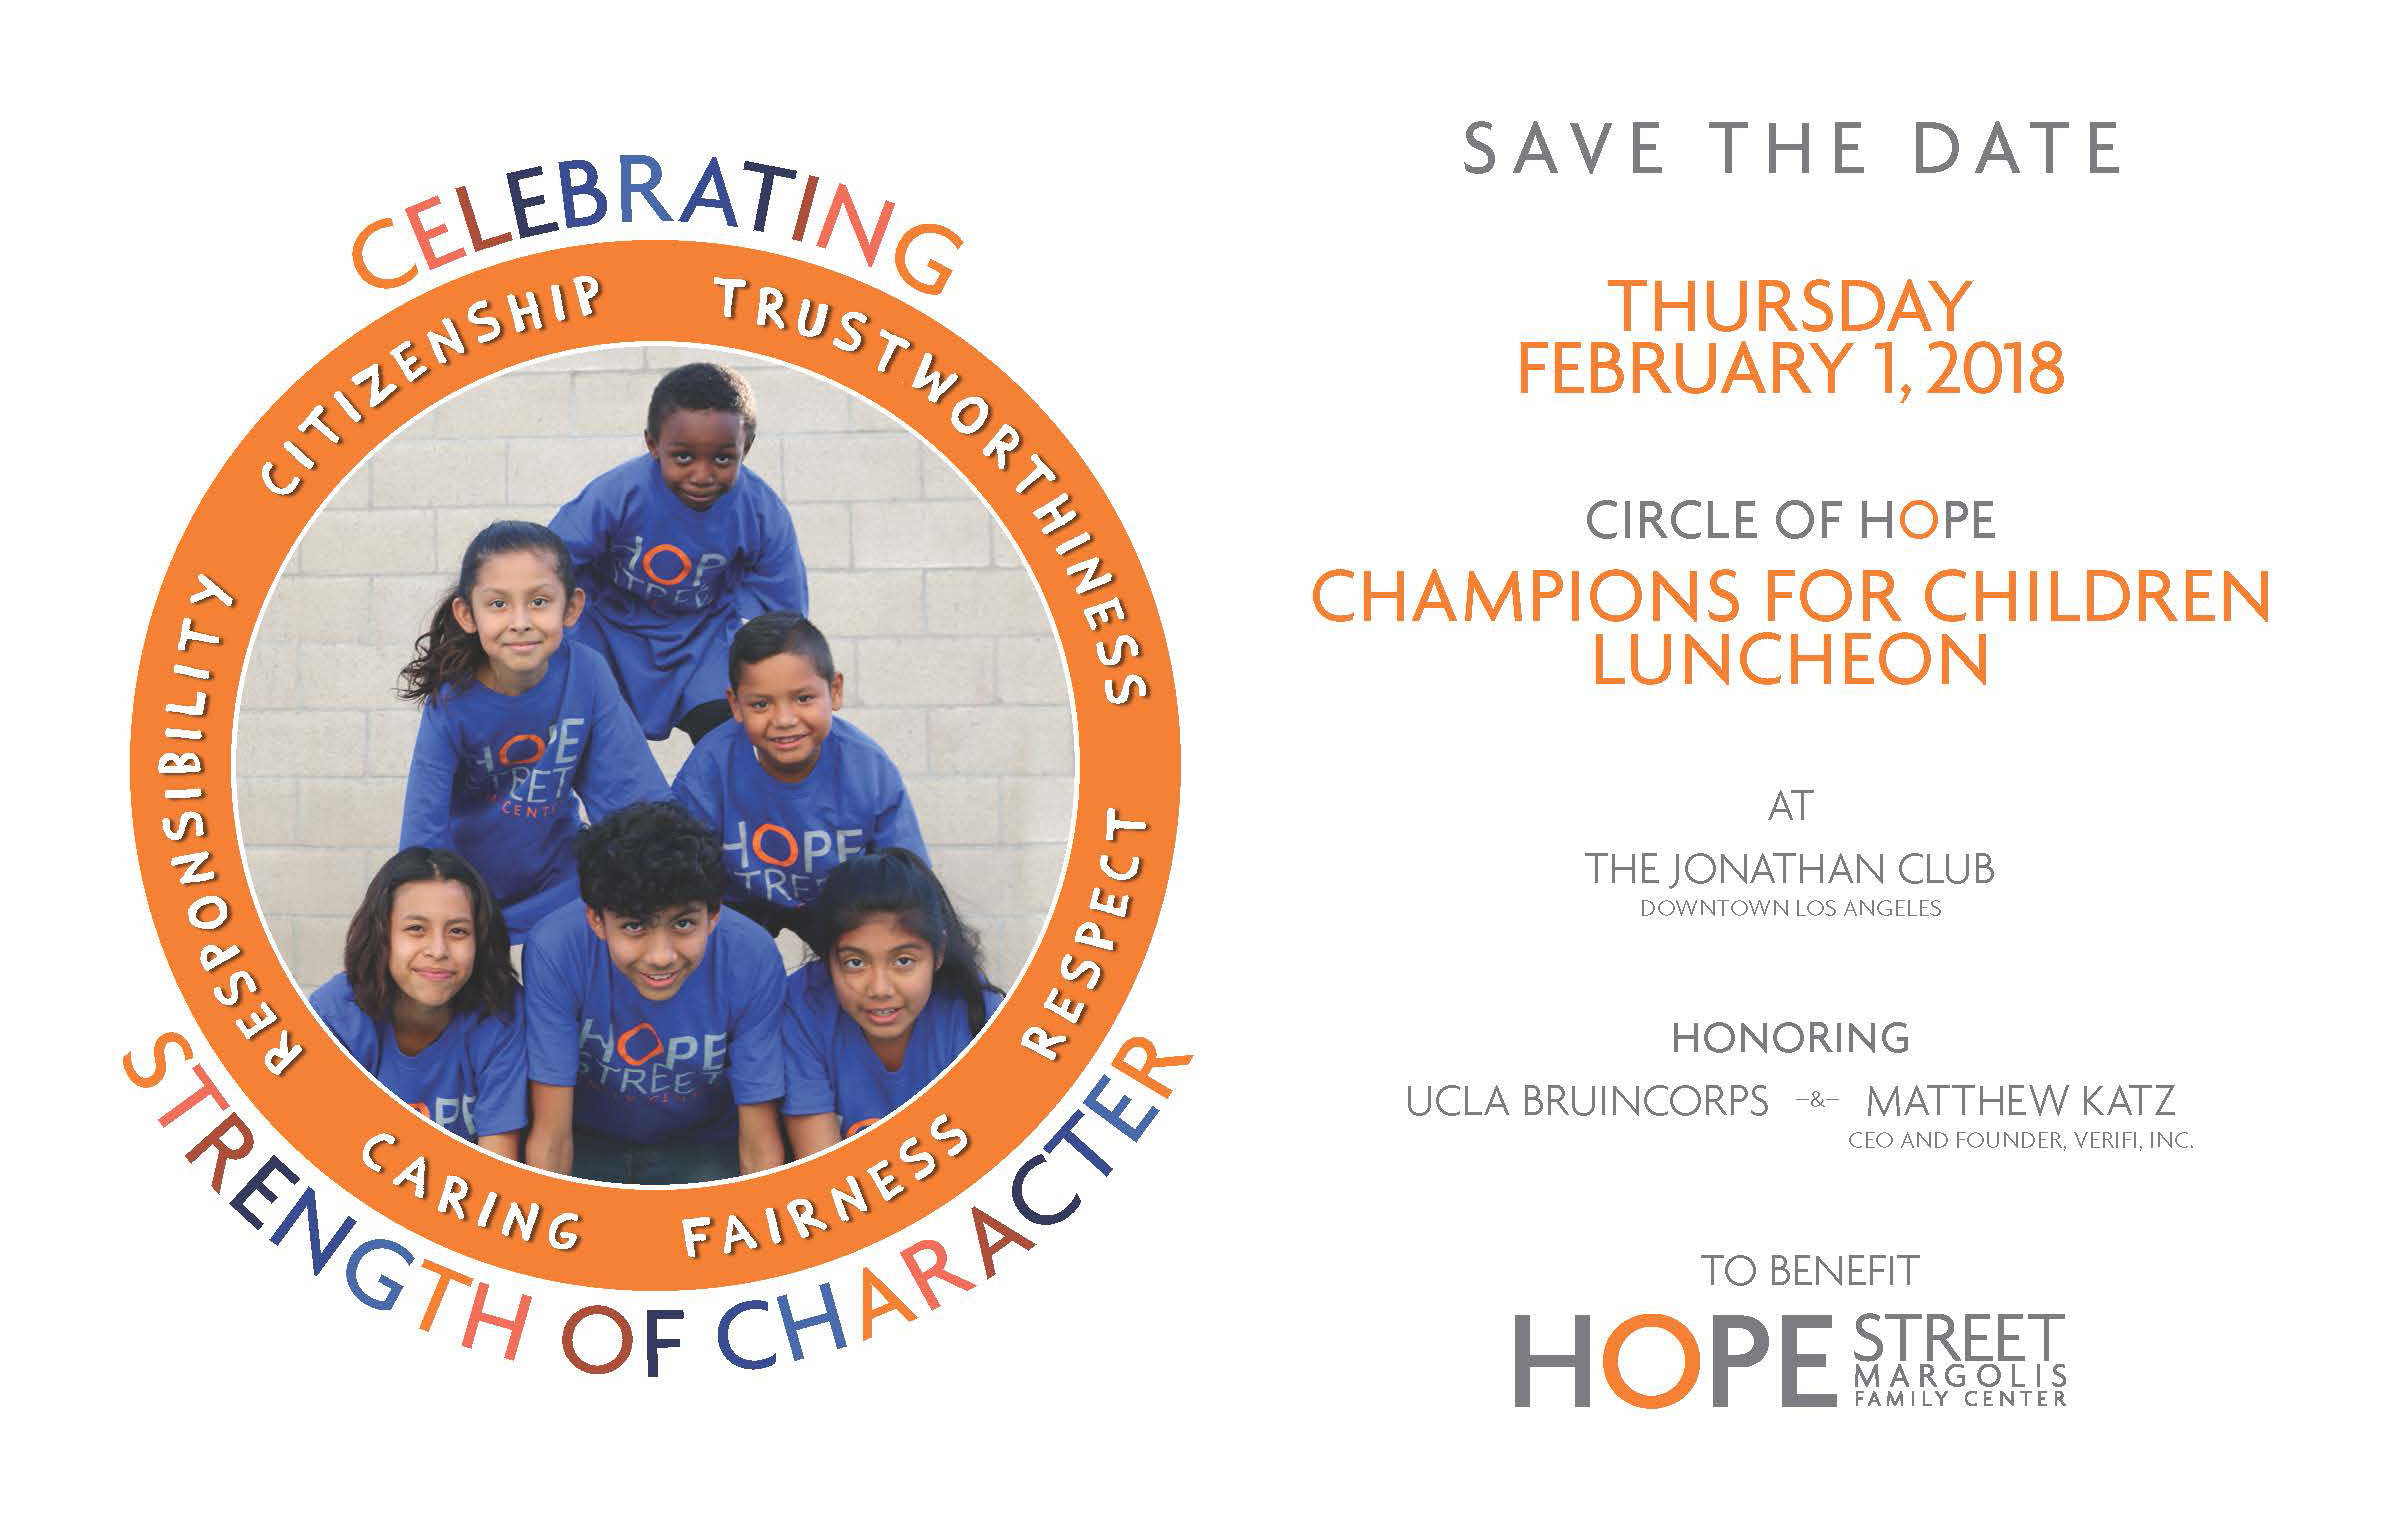 Circle of Hope luncheon invitation